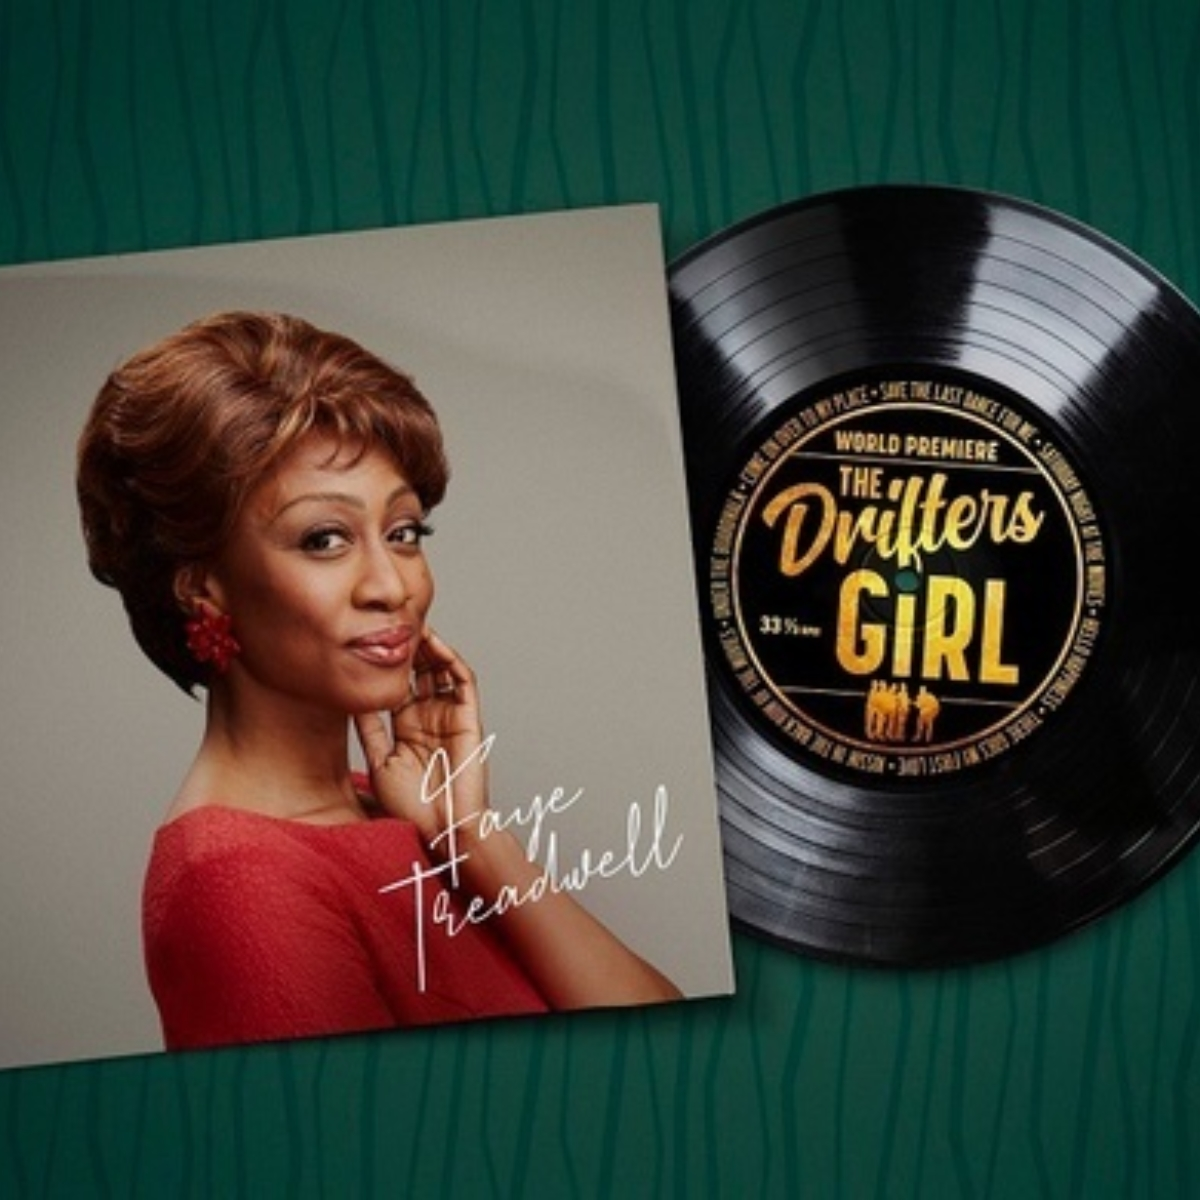 The Drifters Girl Images